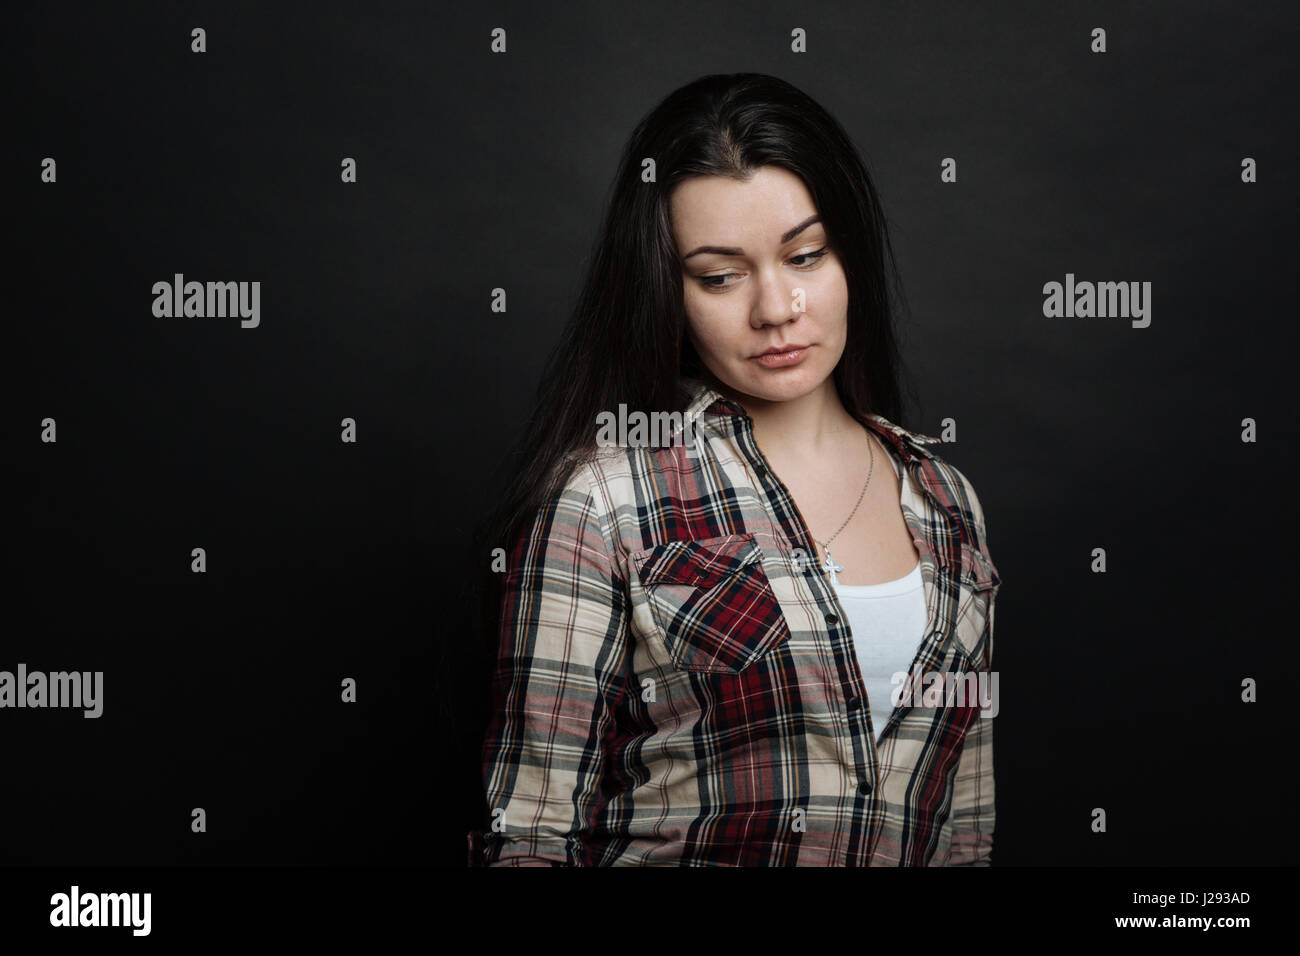 Upset young girl feeling deeply depressed in the studio - Stock Image